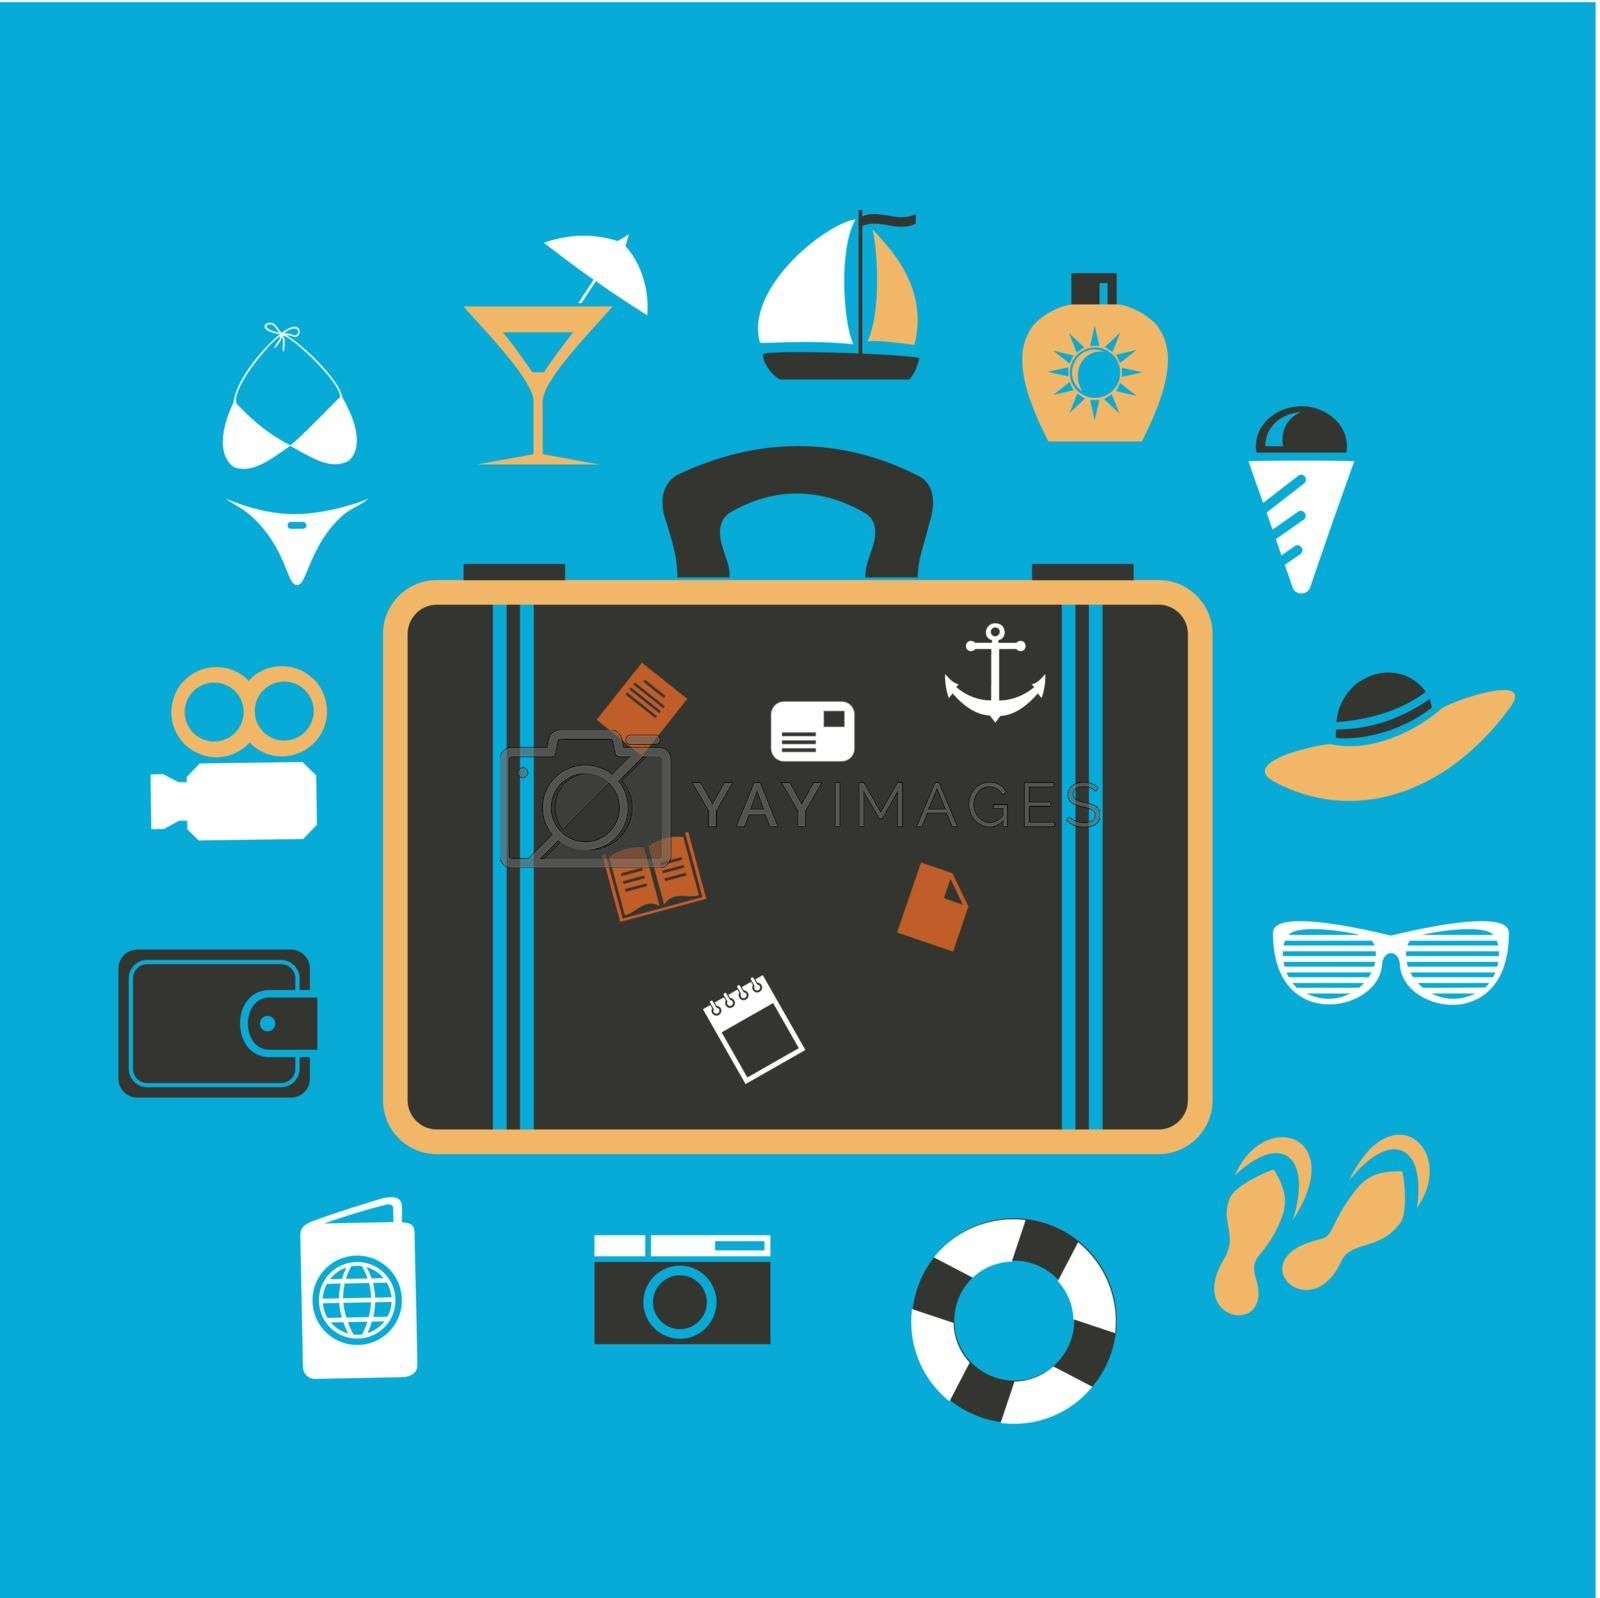 suitcase around the items to travel